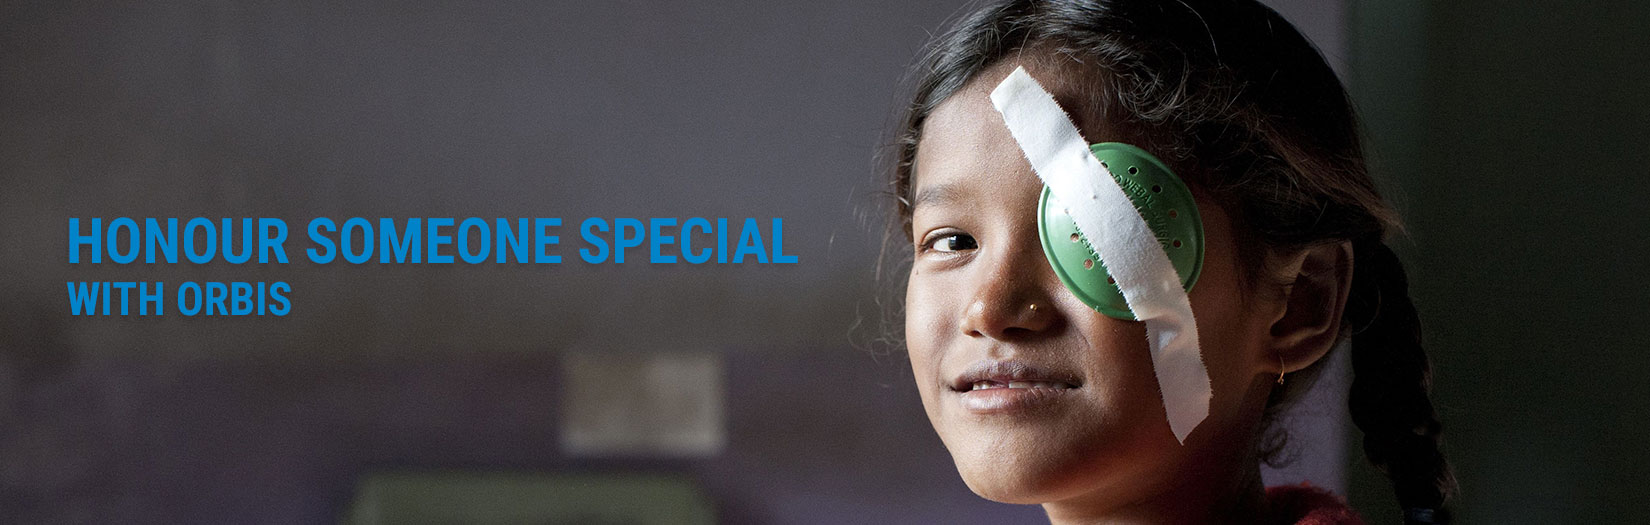 Orbis in honour - Young girl with eye cover